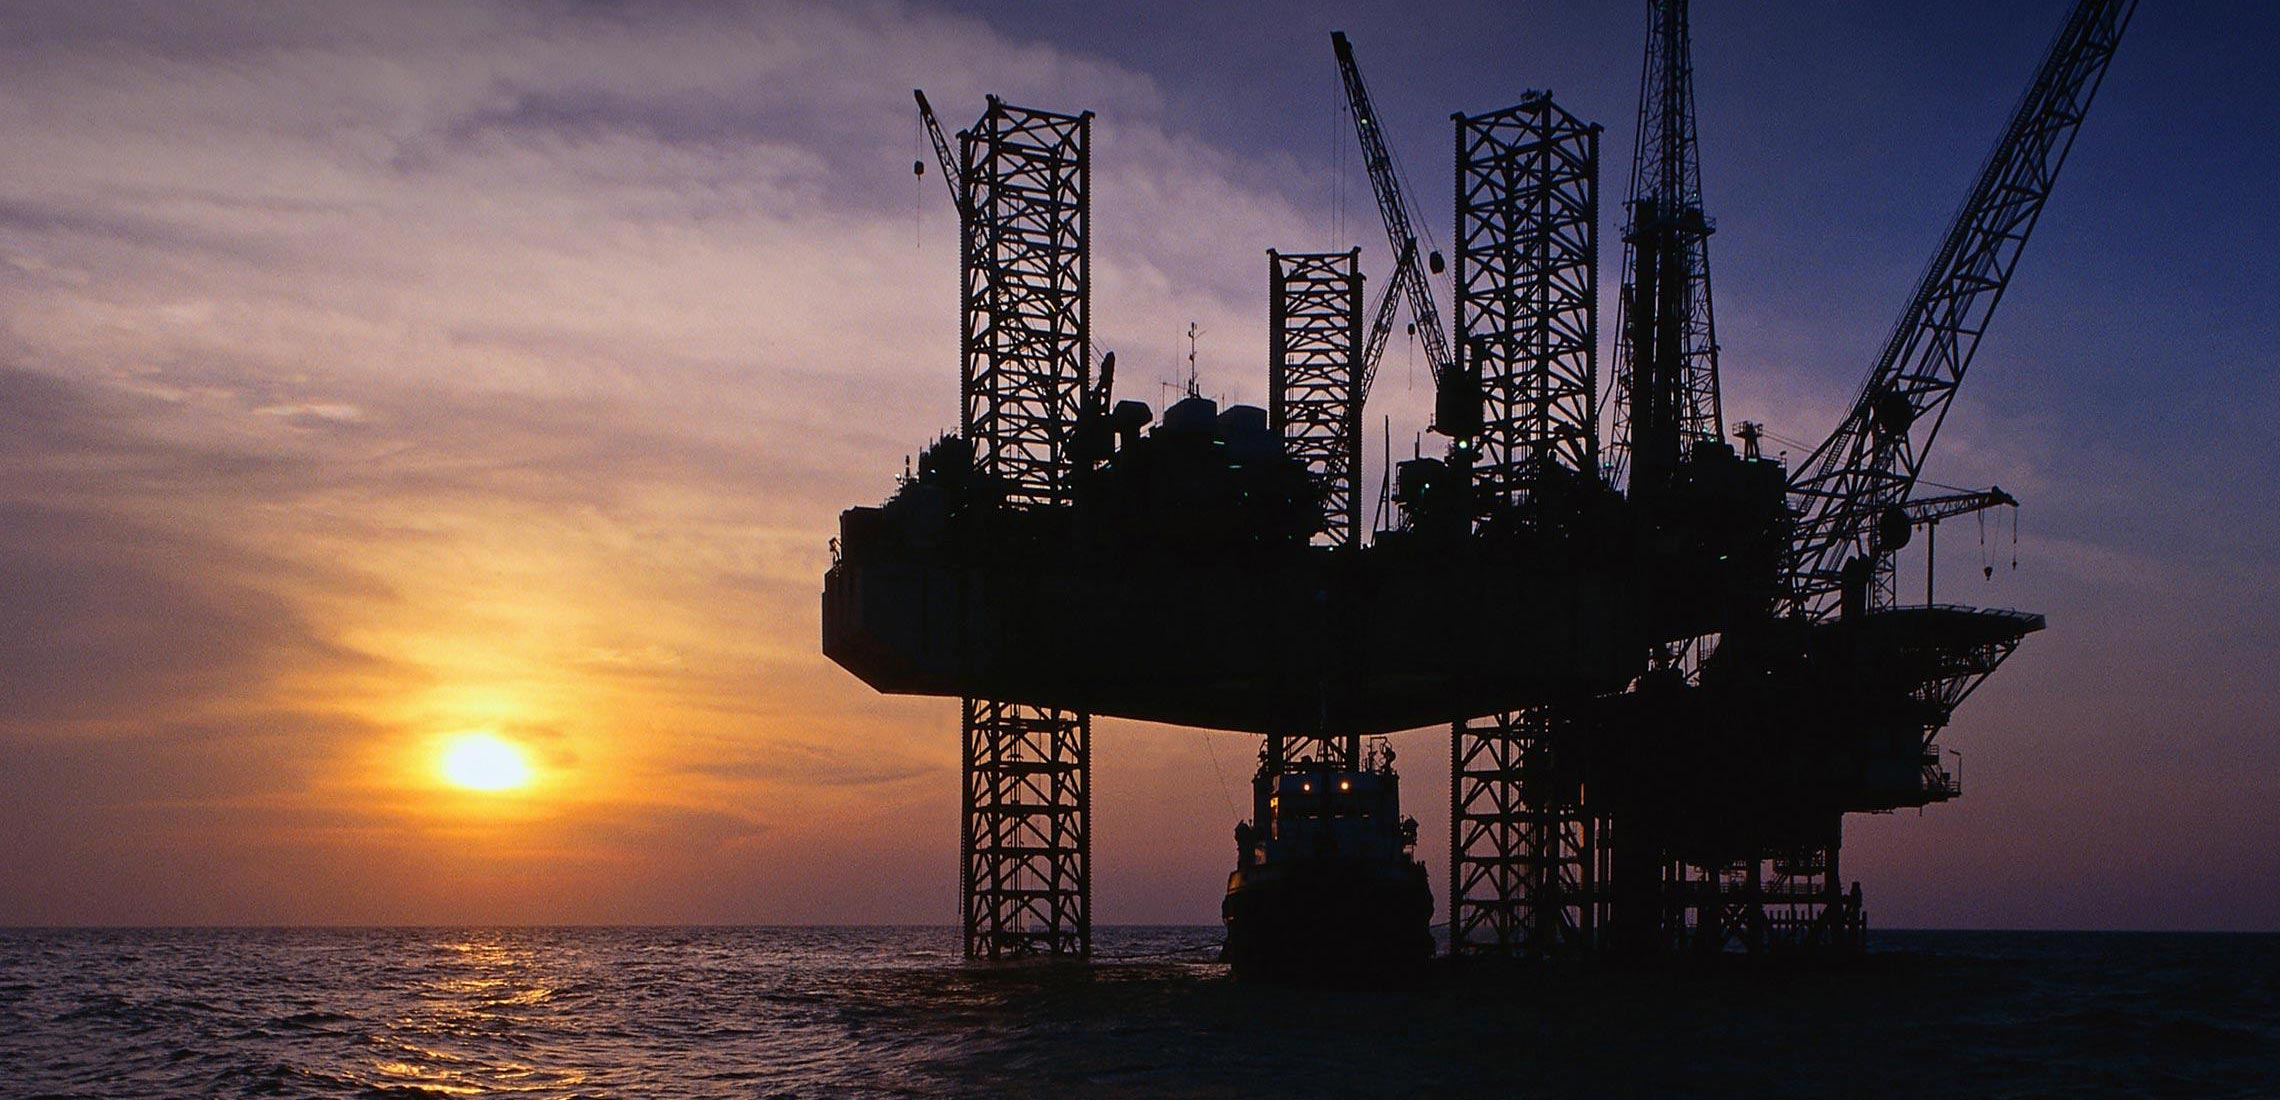 Providing support for the offshore oil industry, marine safety and charting organisations